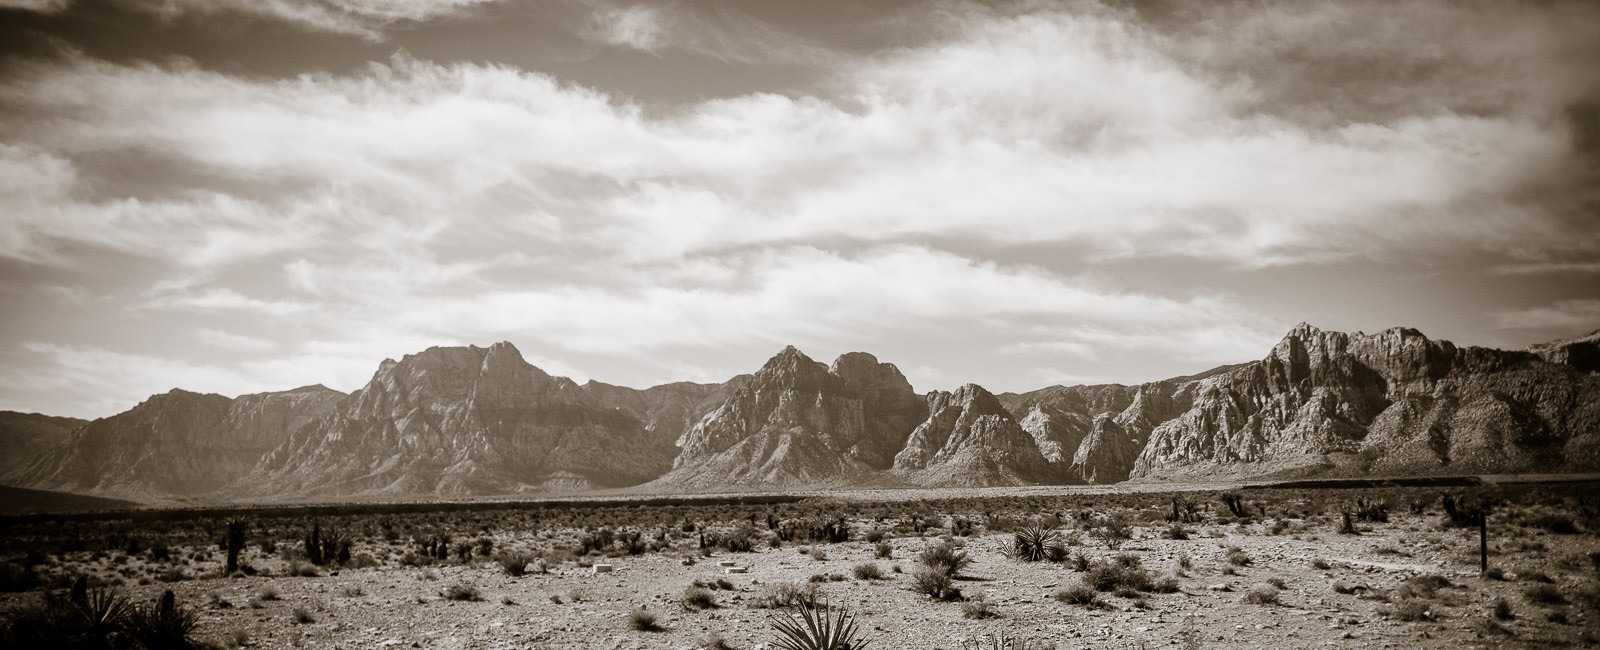 4 Lessons the Desert Can Teach Healthcare Marketers